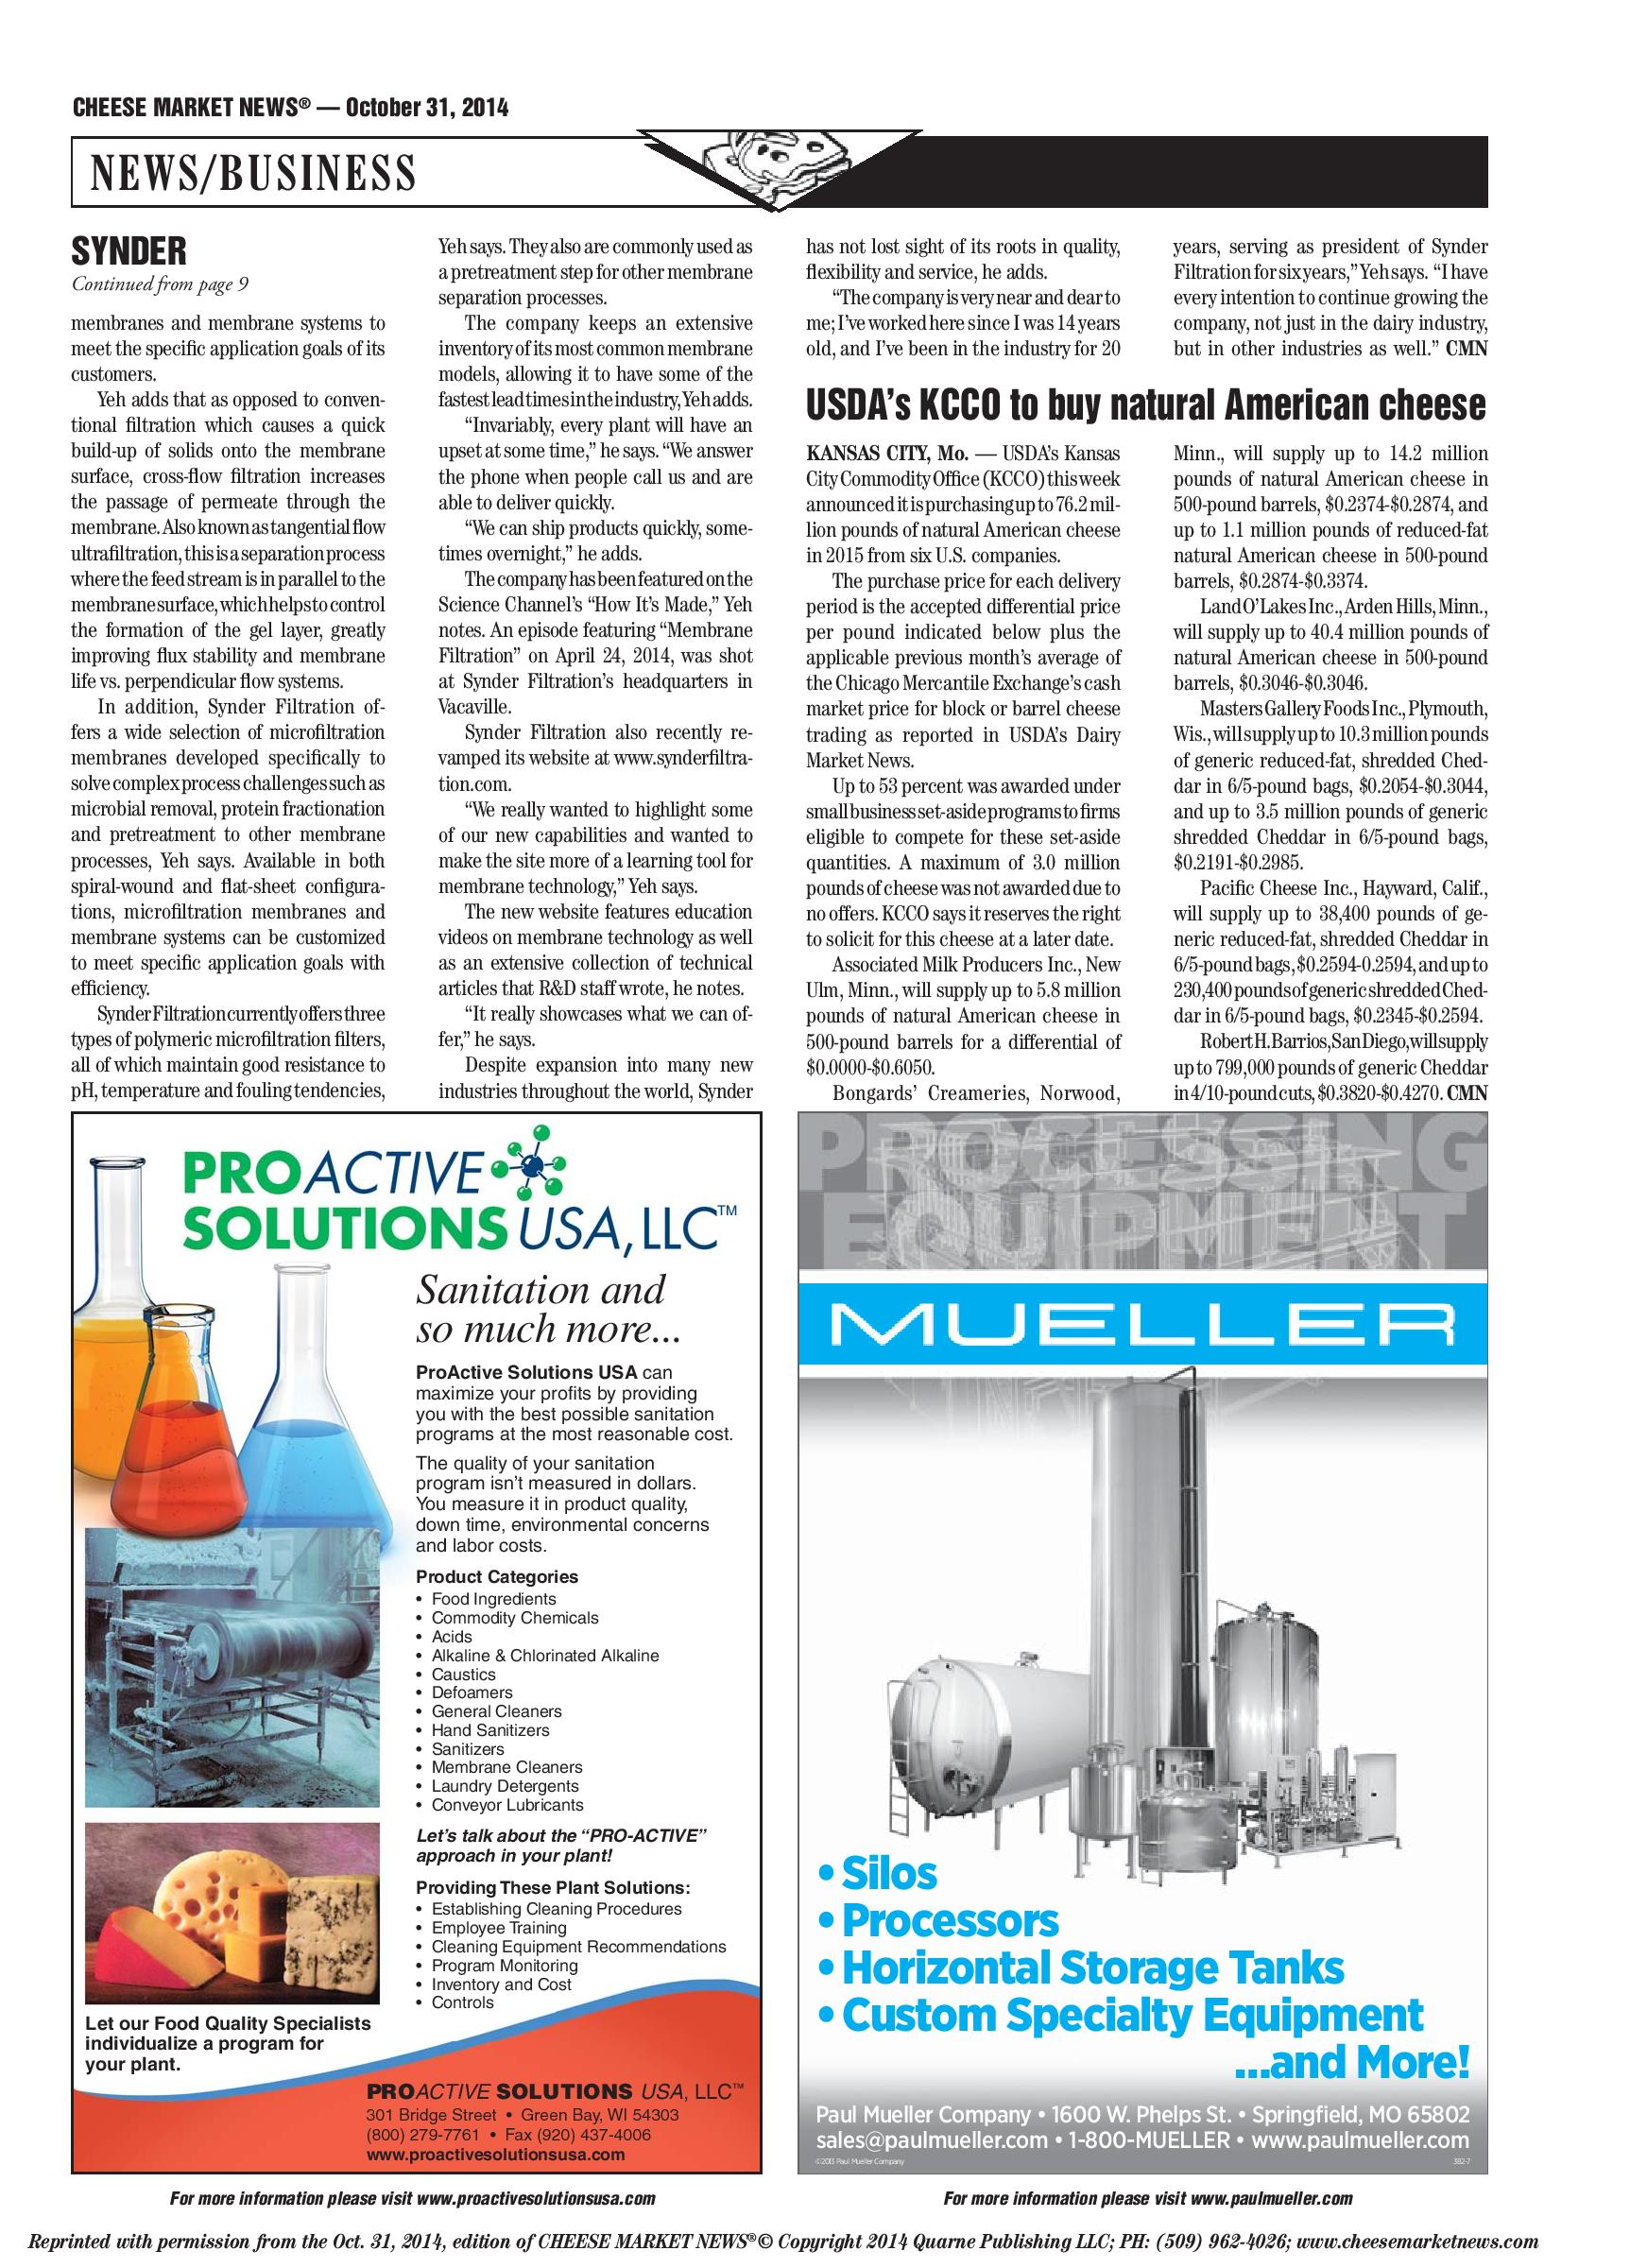 10.31.14_Synder - Cheese Market News-page-002